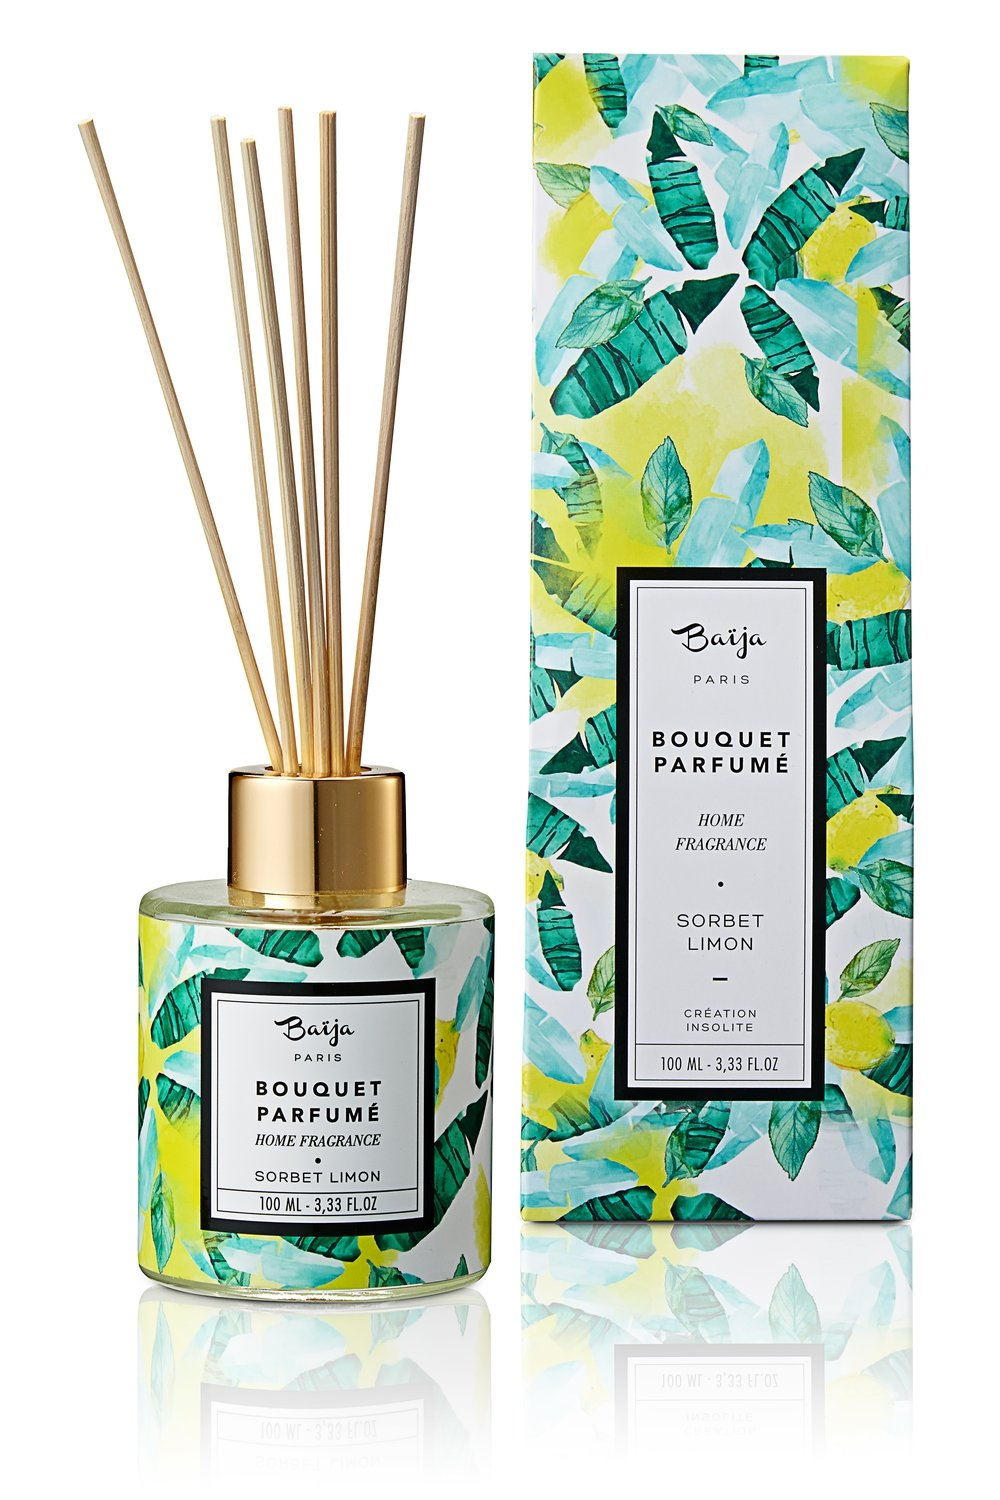 Bouquet parfumé 100ml